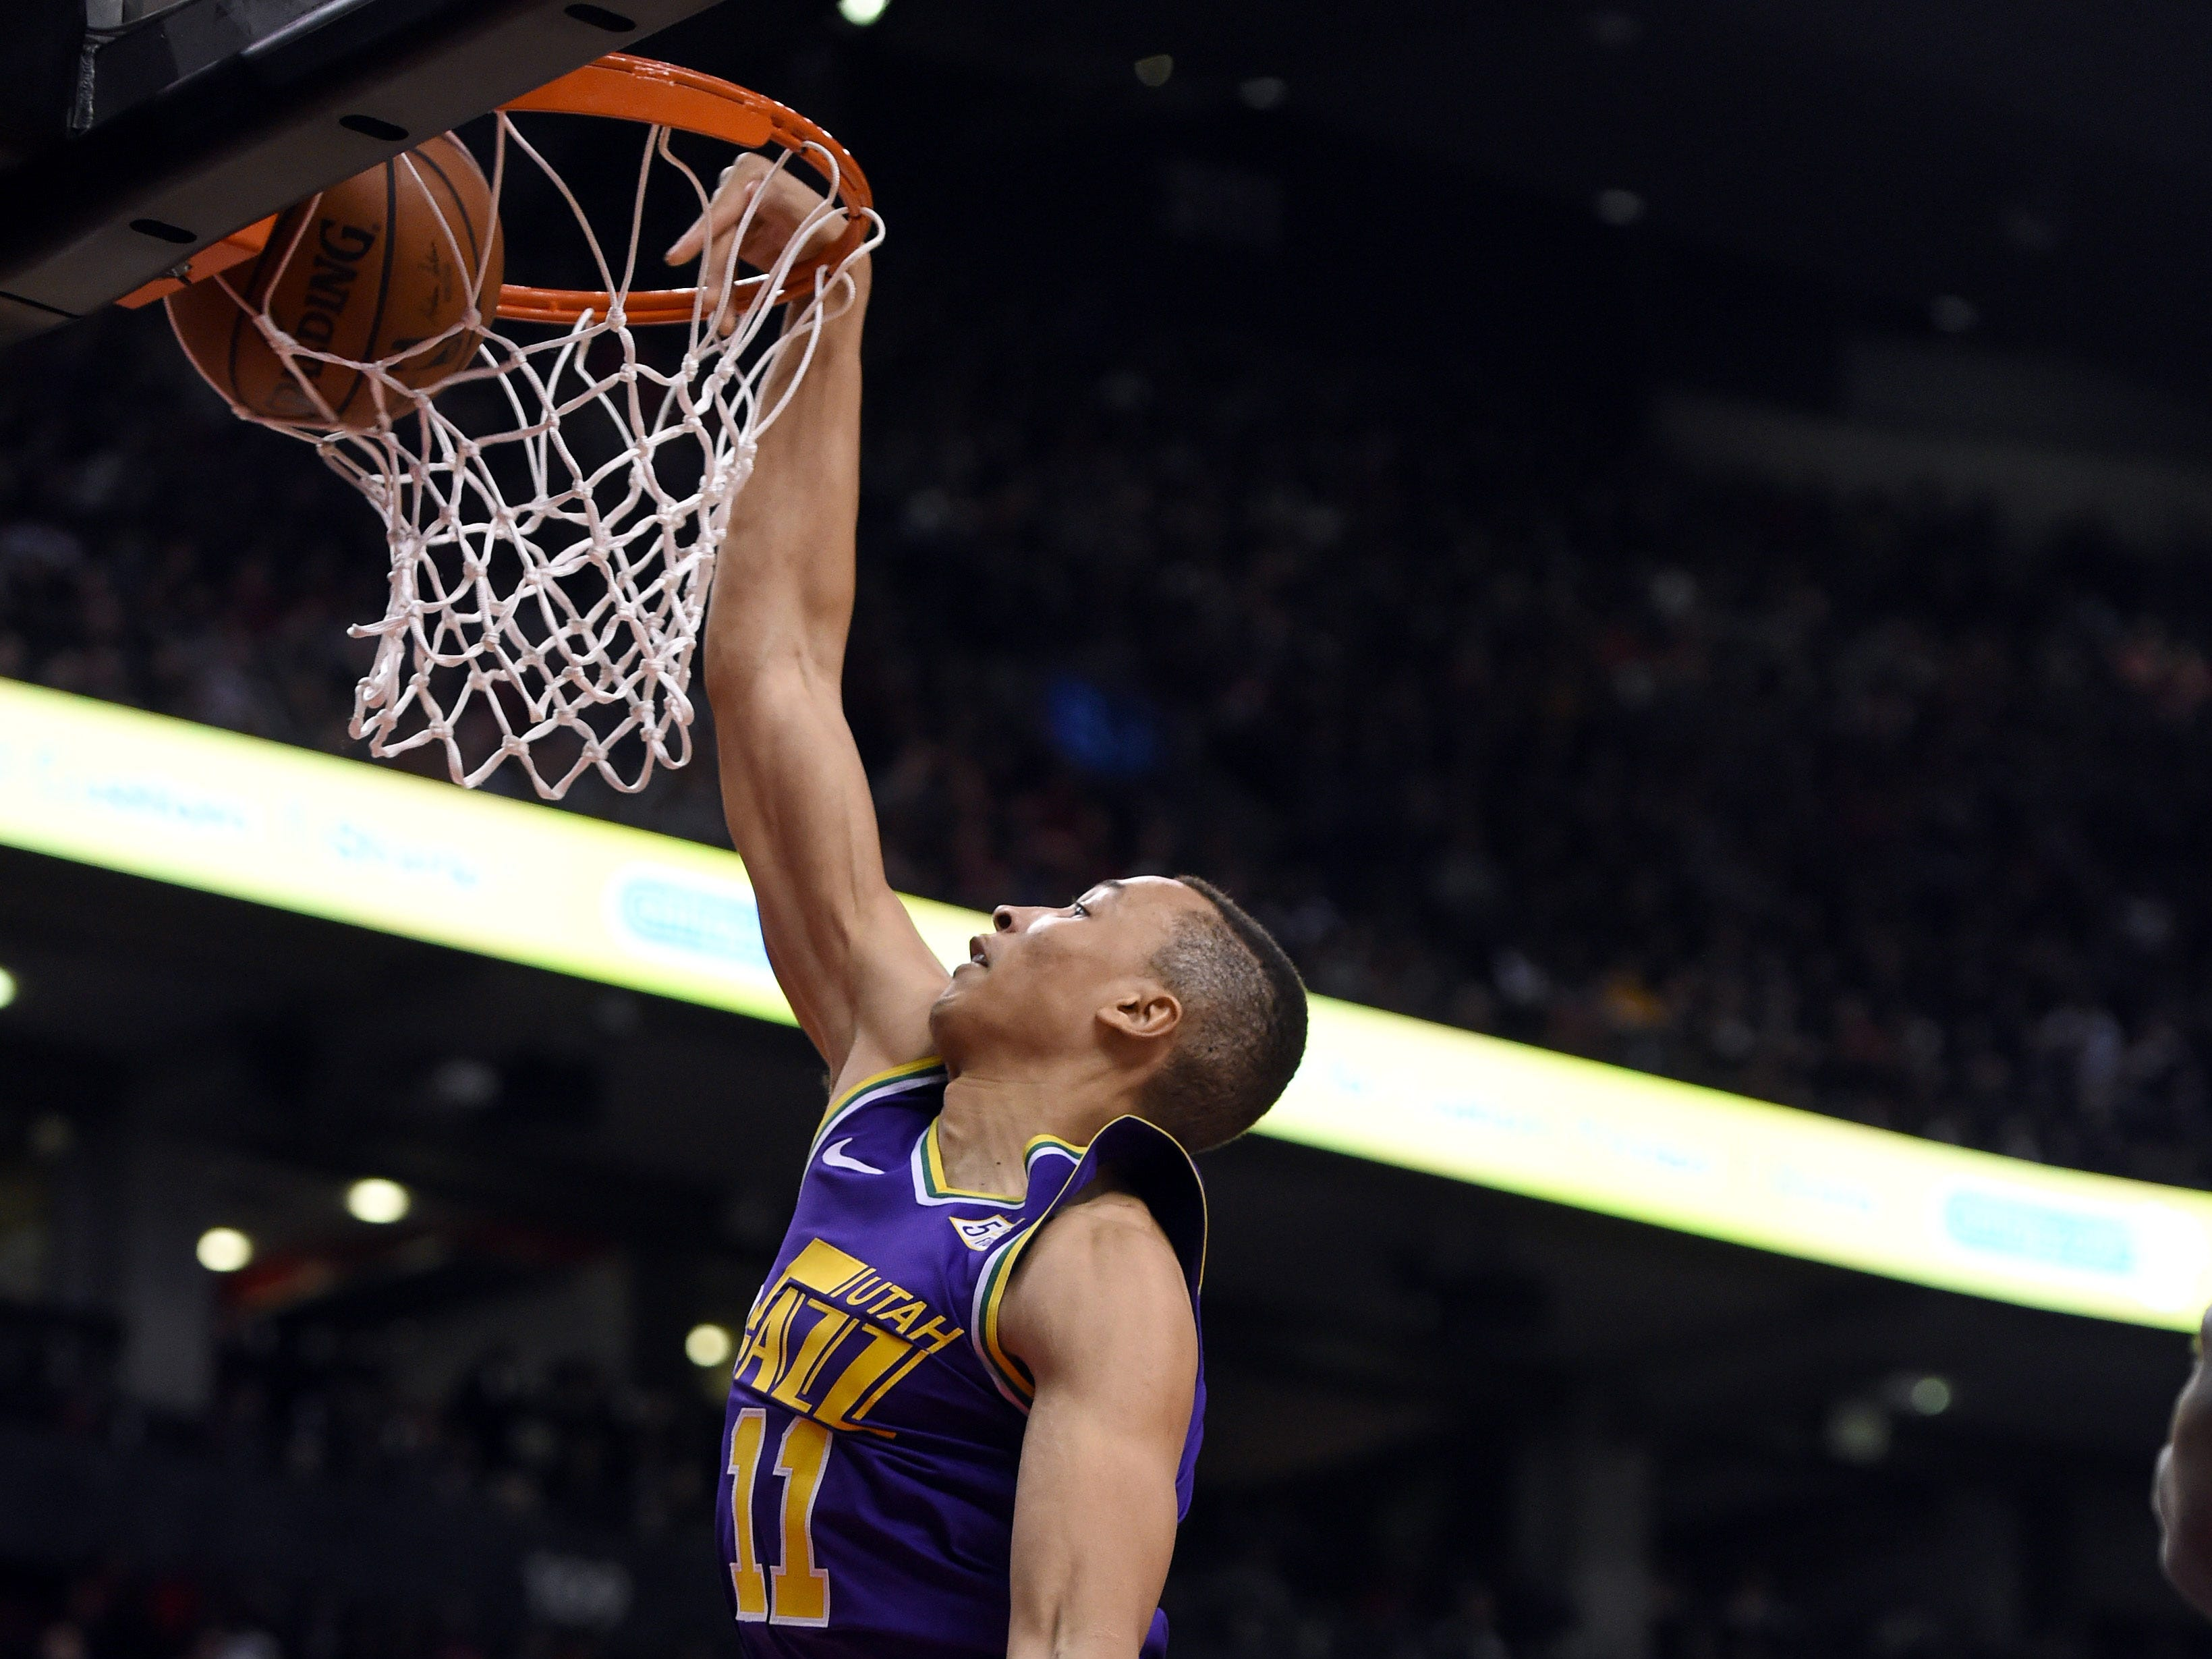 Jan. 1: Utah Jazz guard Dante Exum dunks for a basket against the Toronto Raptors in the second half at Scotiabank Arena.